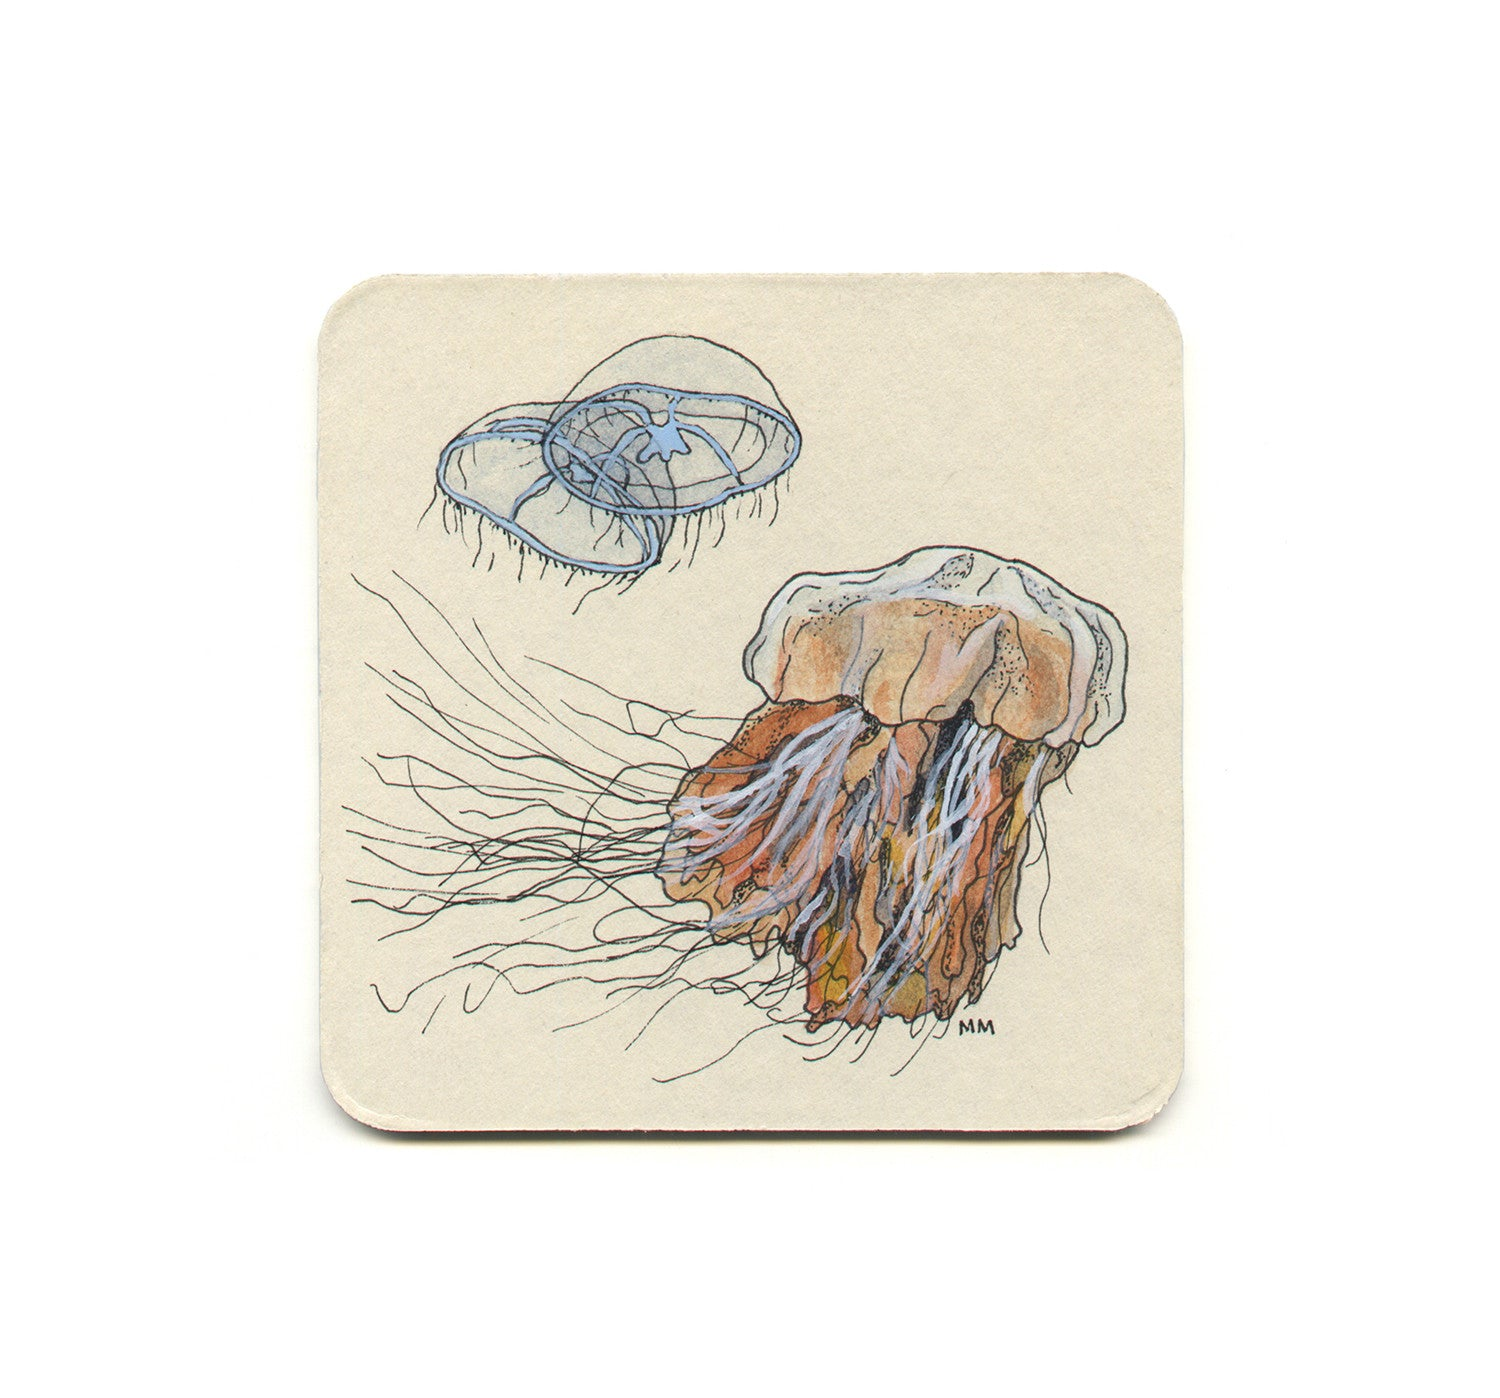 S1 Madison Erin Mayfield - Cross Jellyfish & Lion's Mane Jellyfish Coaster